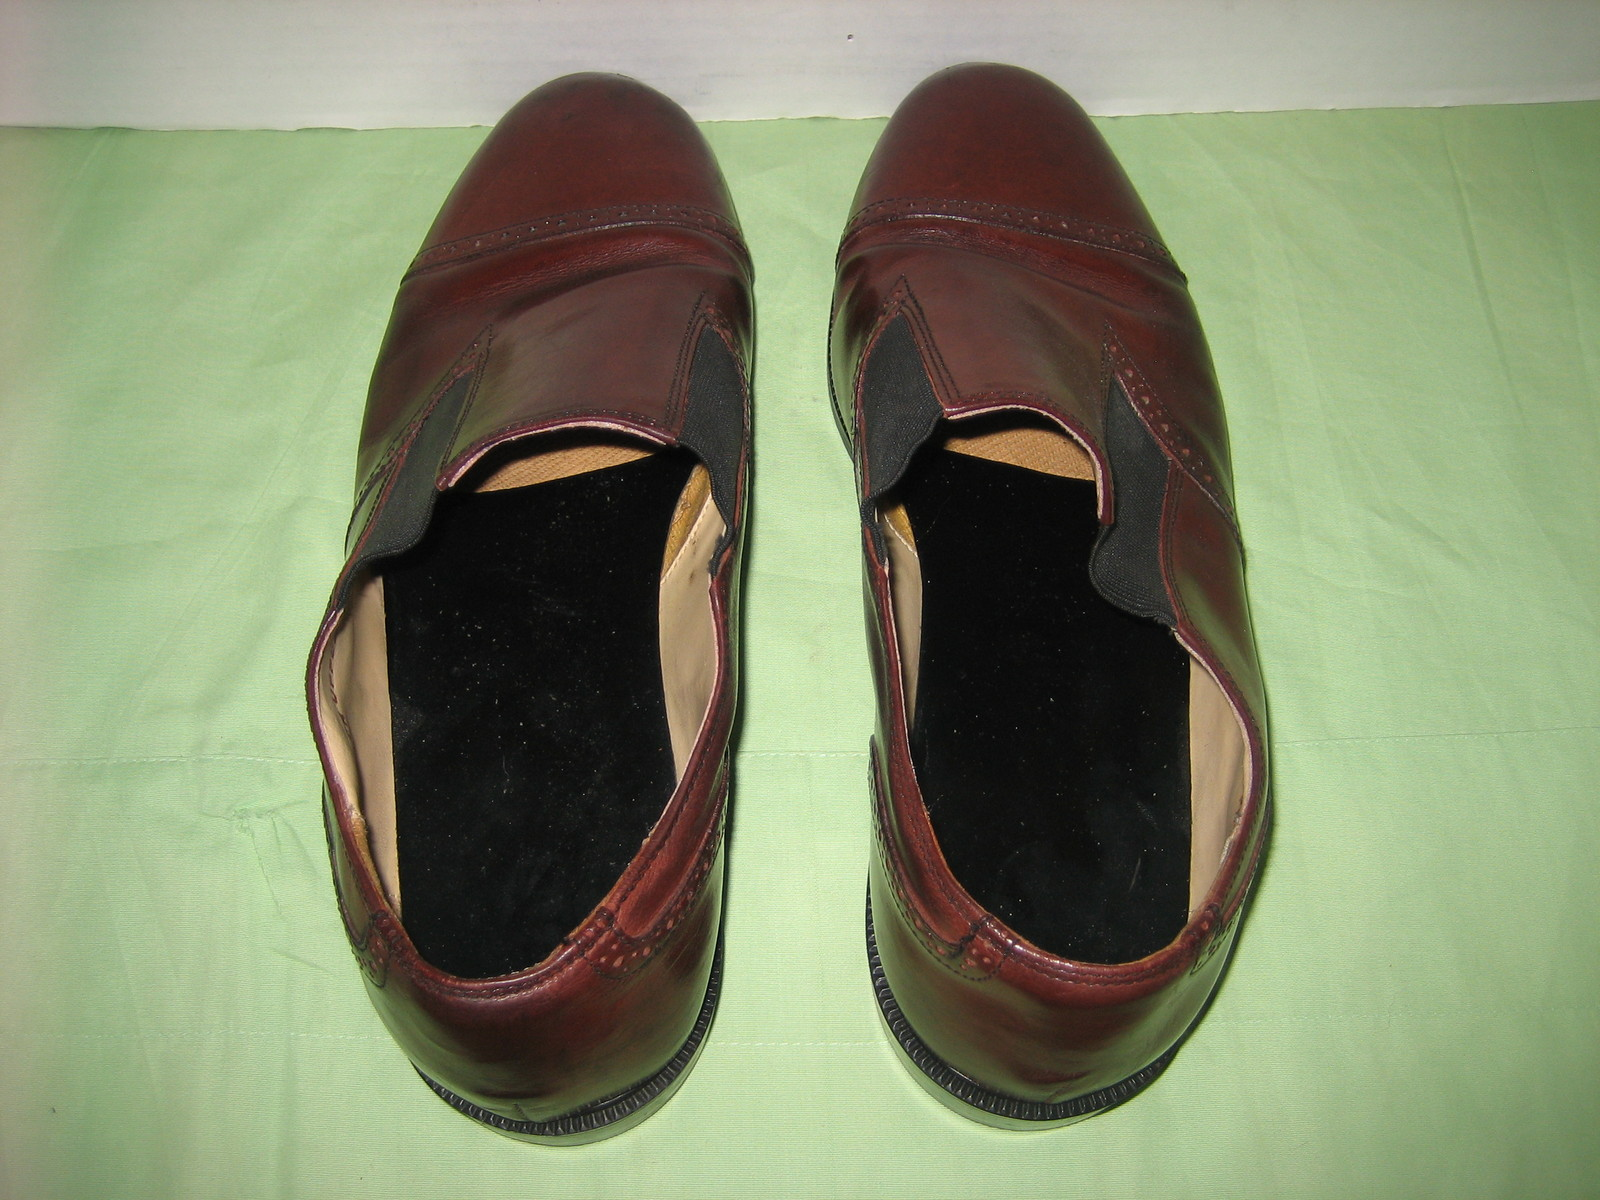 Men's Italy Made Brown Leather Captoe Brogue Loafers w/ Elastic Gores, 12 EE+